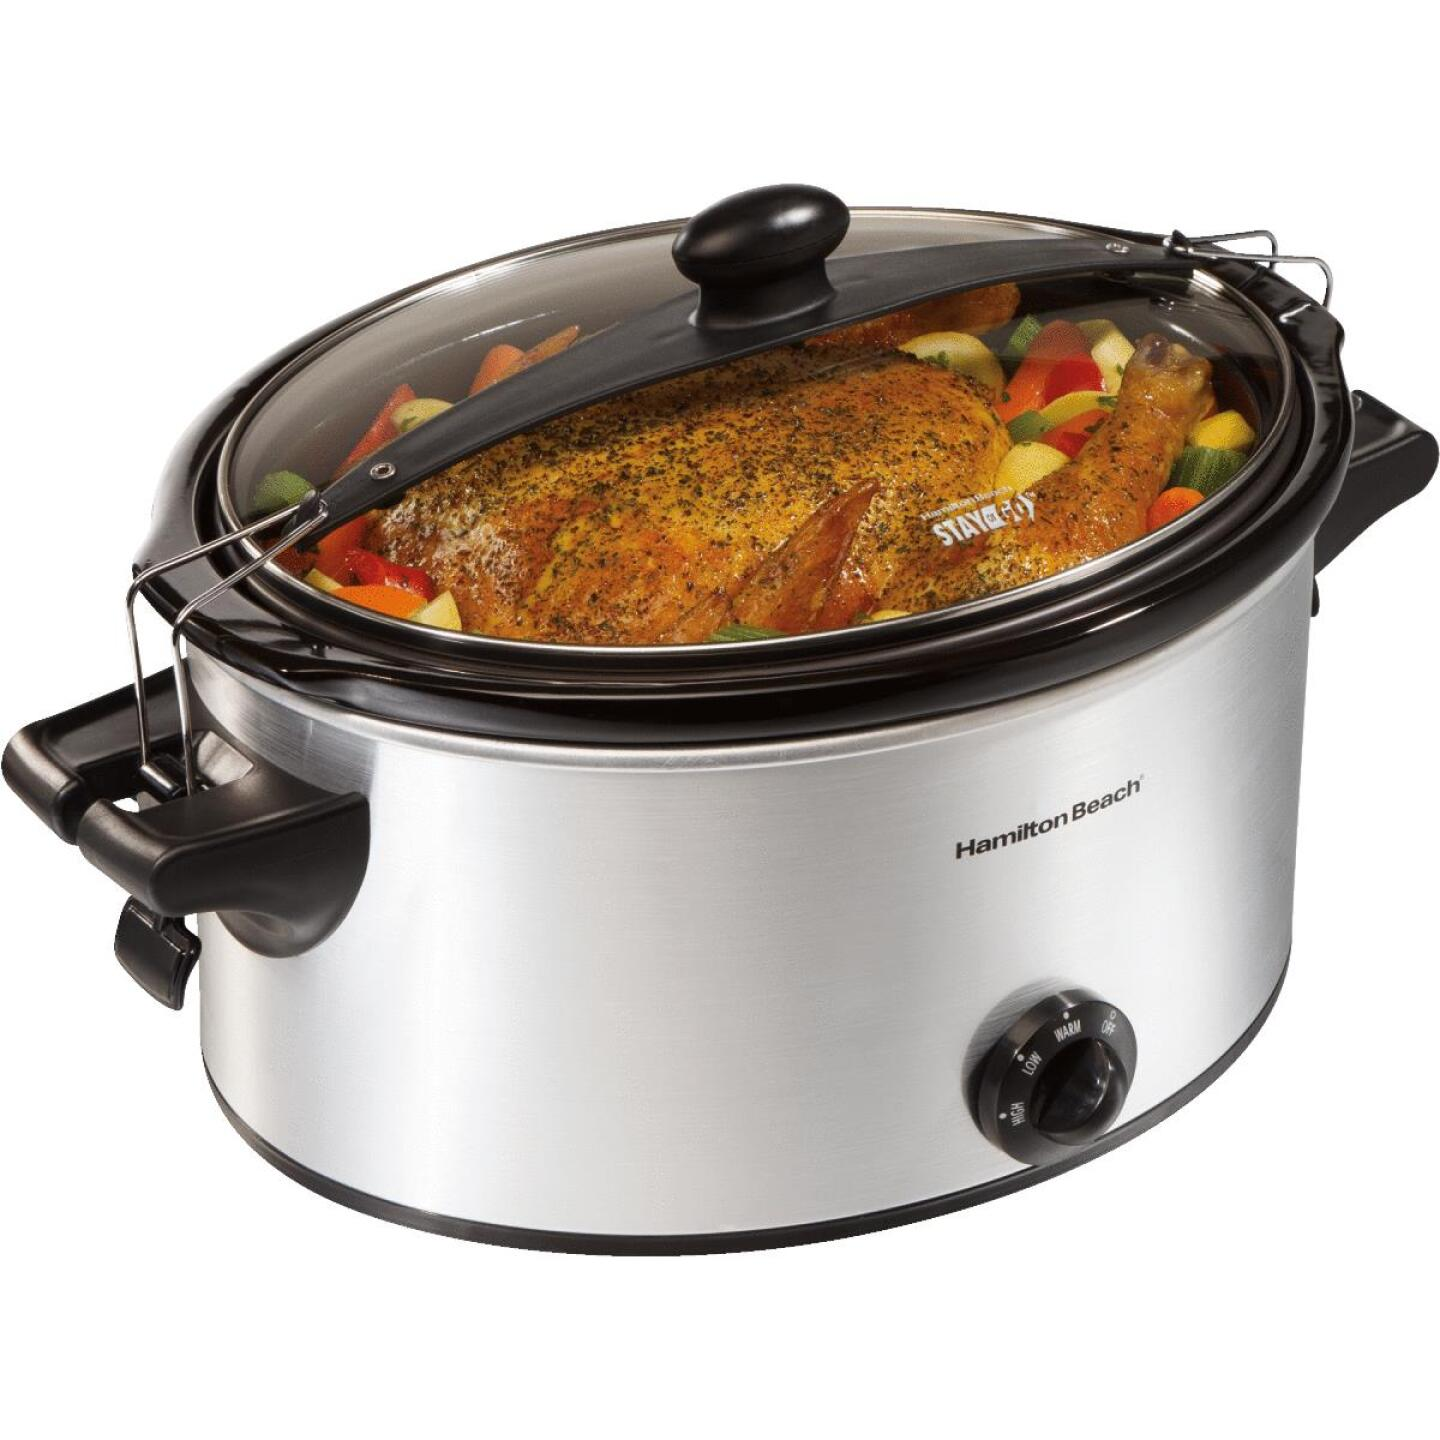 Hamilton Beach Stay or Go 6 Qt. Stainless Steel Slow Cooker Image 3